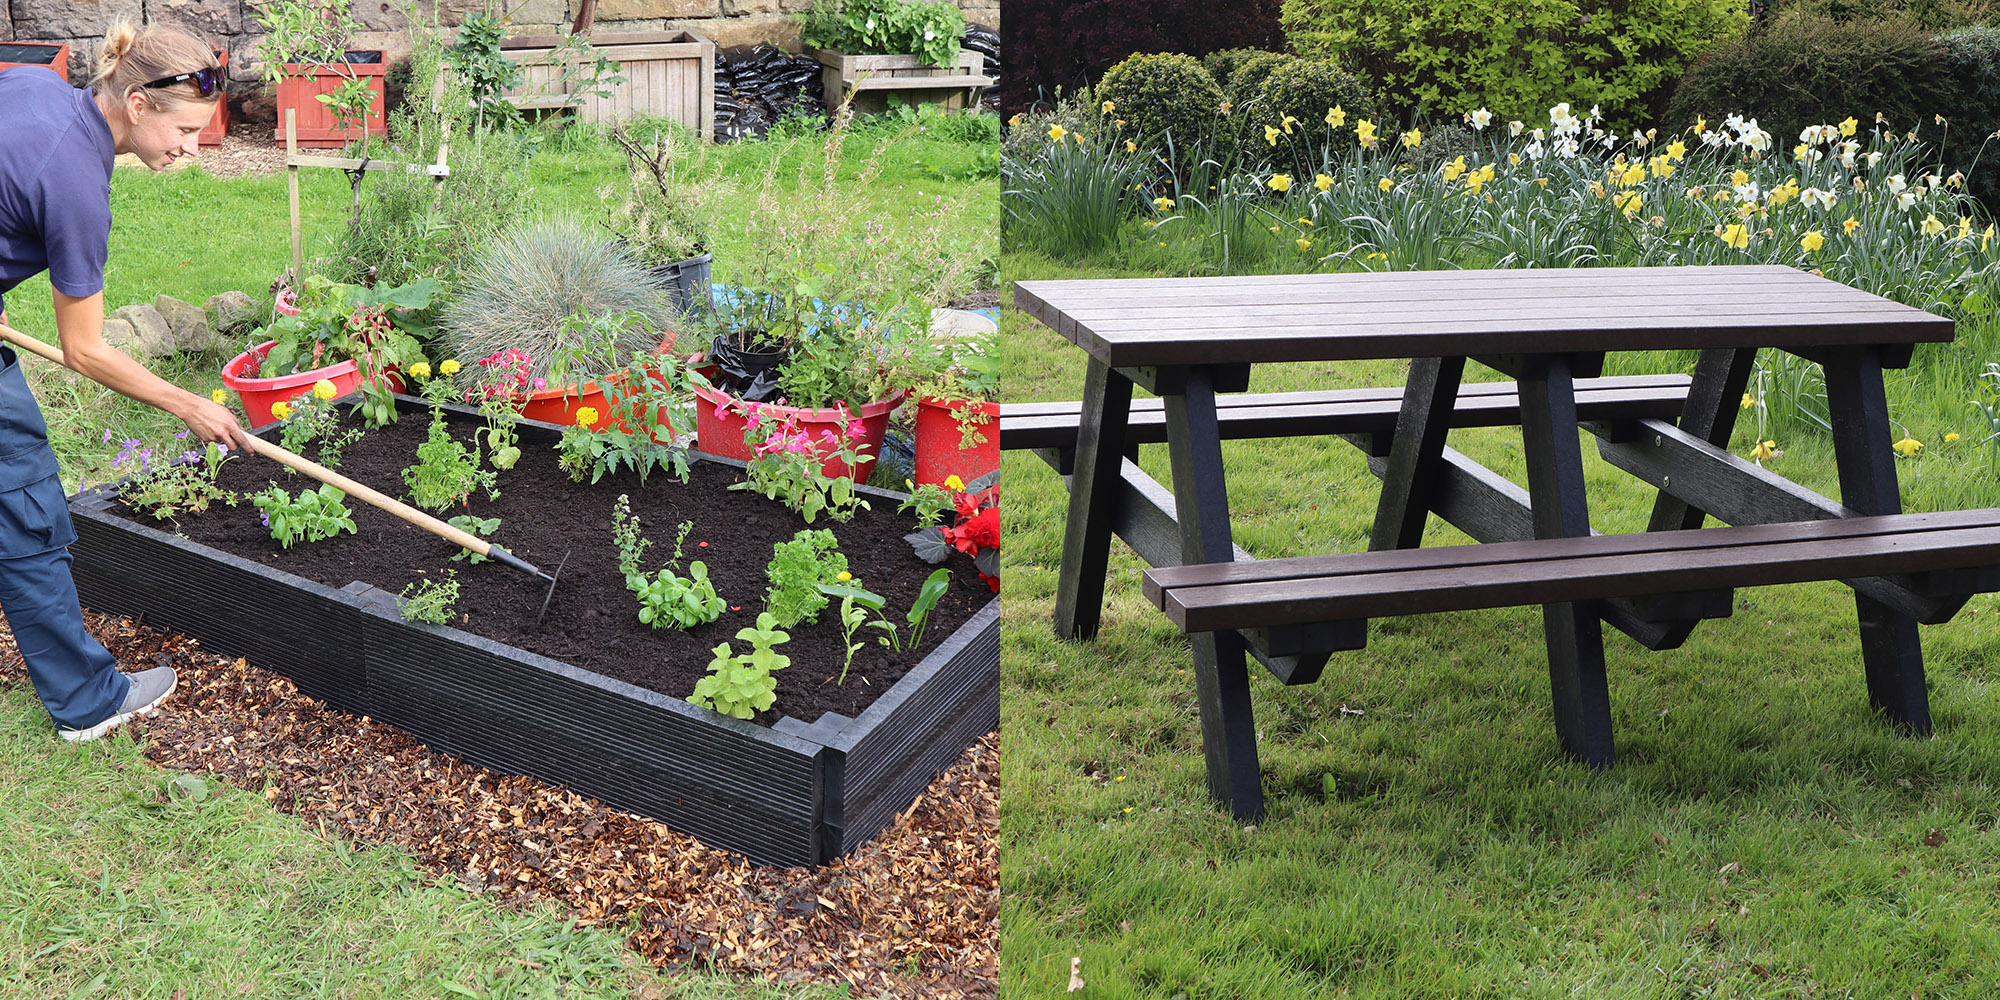 ***WIN A PICNIC TABLE OR RAISED BED***